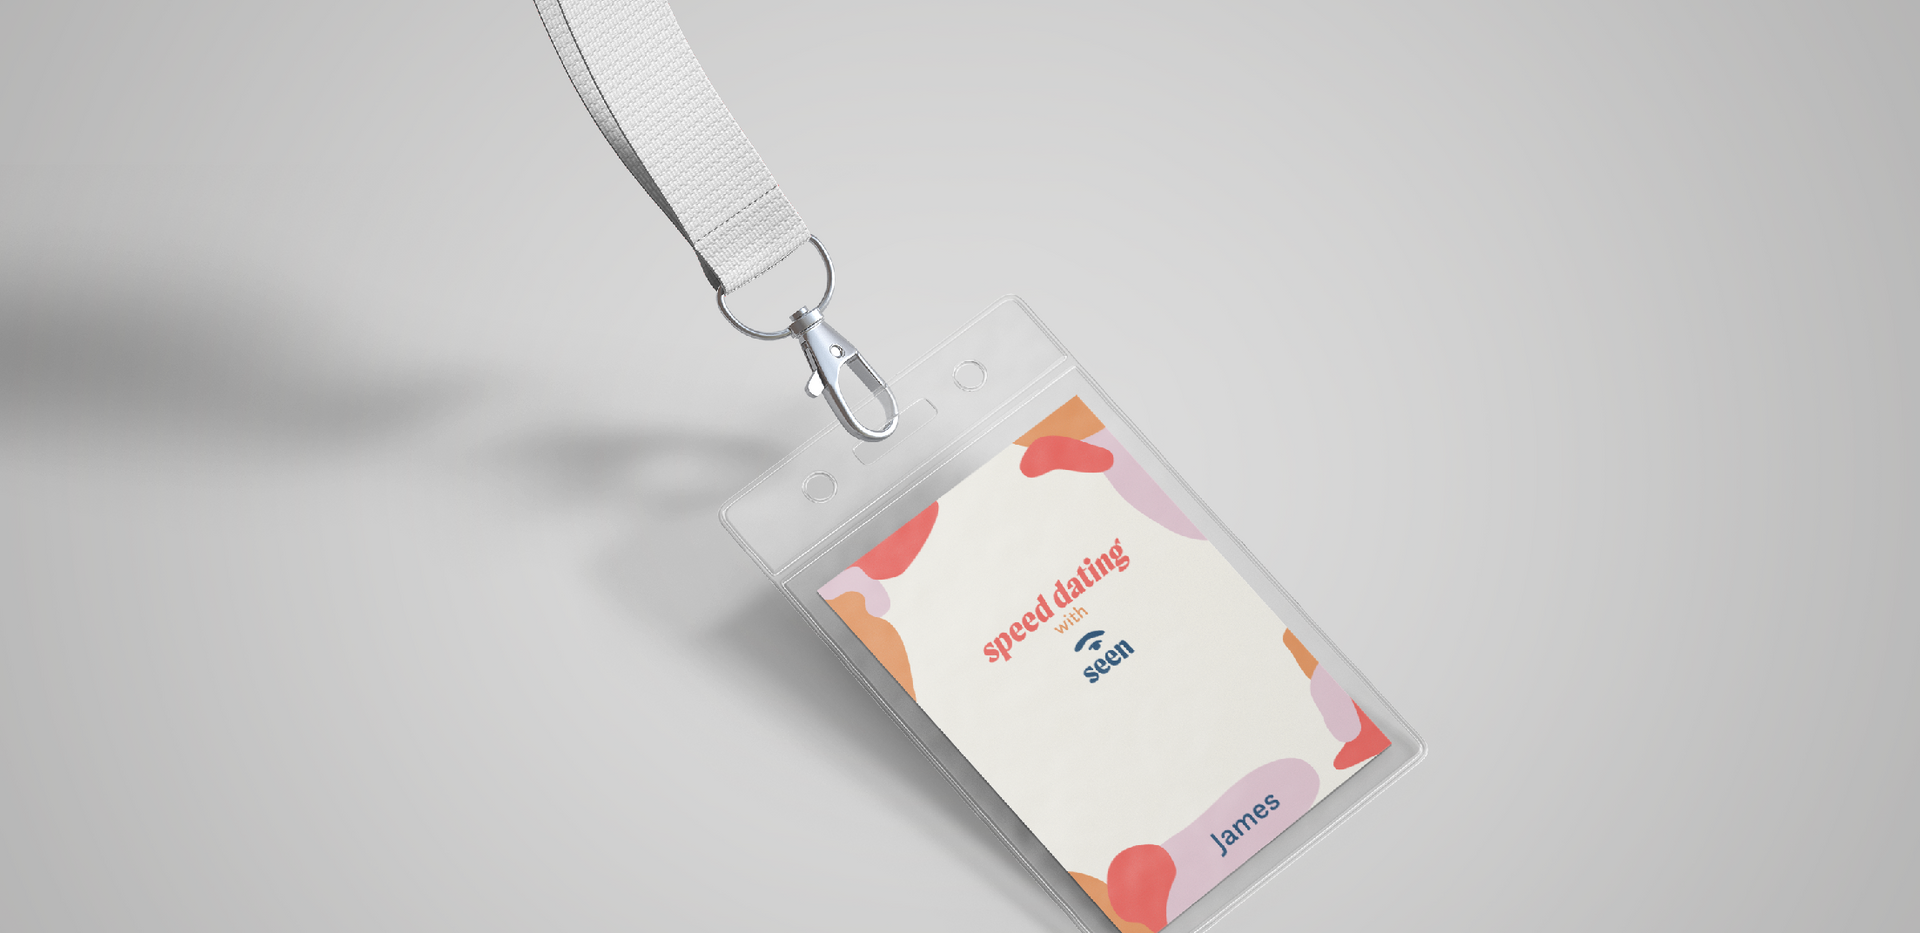 Speed dating event badge